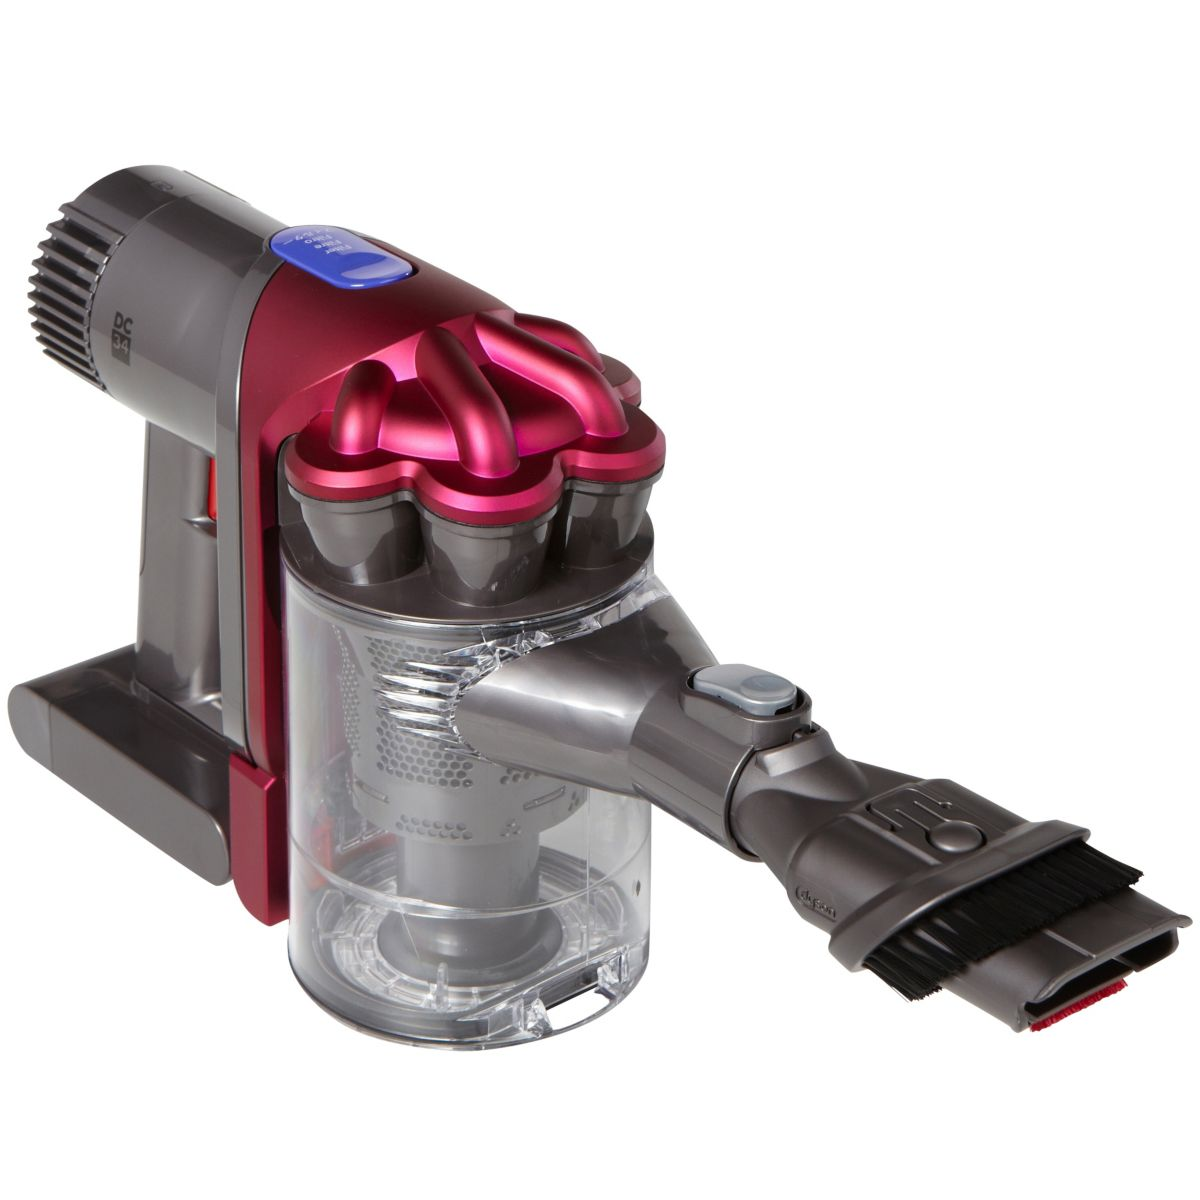 dyson dc34 aspirateur main sans fils et sans sac comparer avec. Black Bedroom Furniture Sets. Home Design Ideas